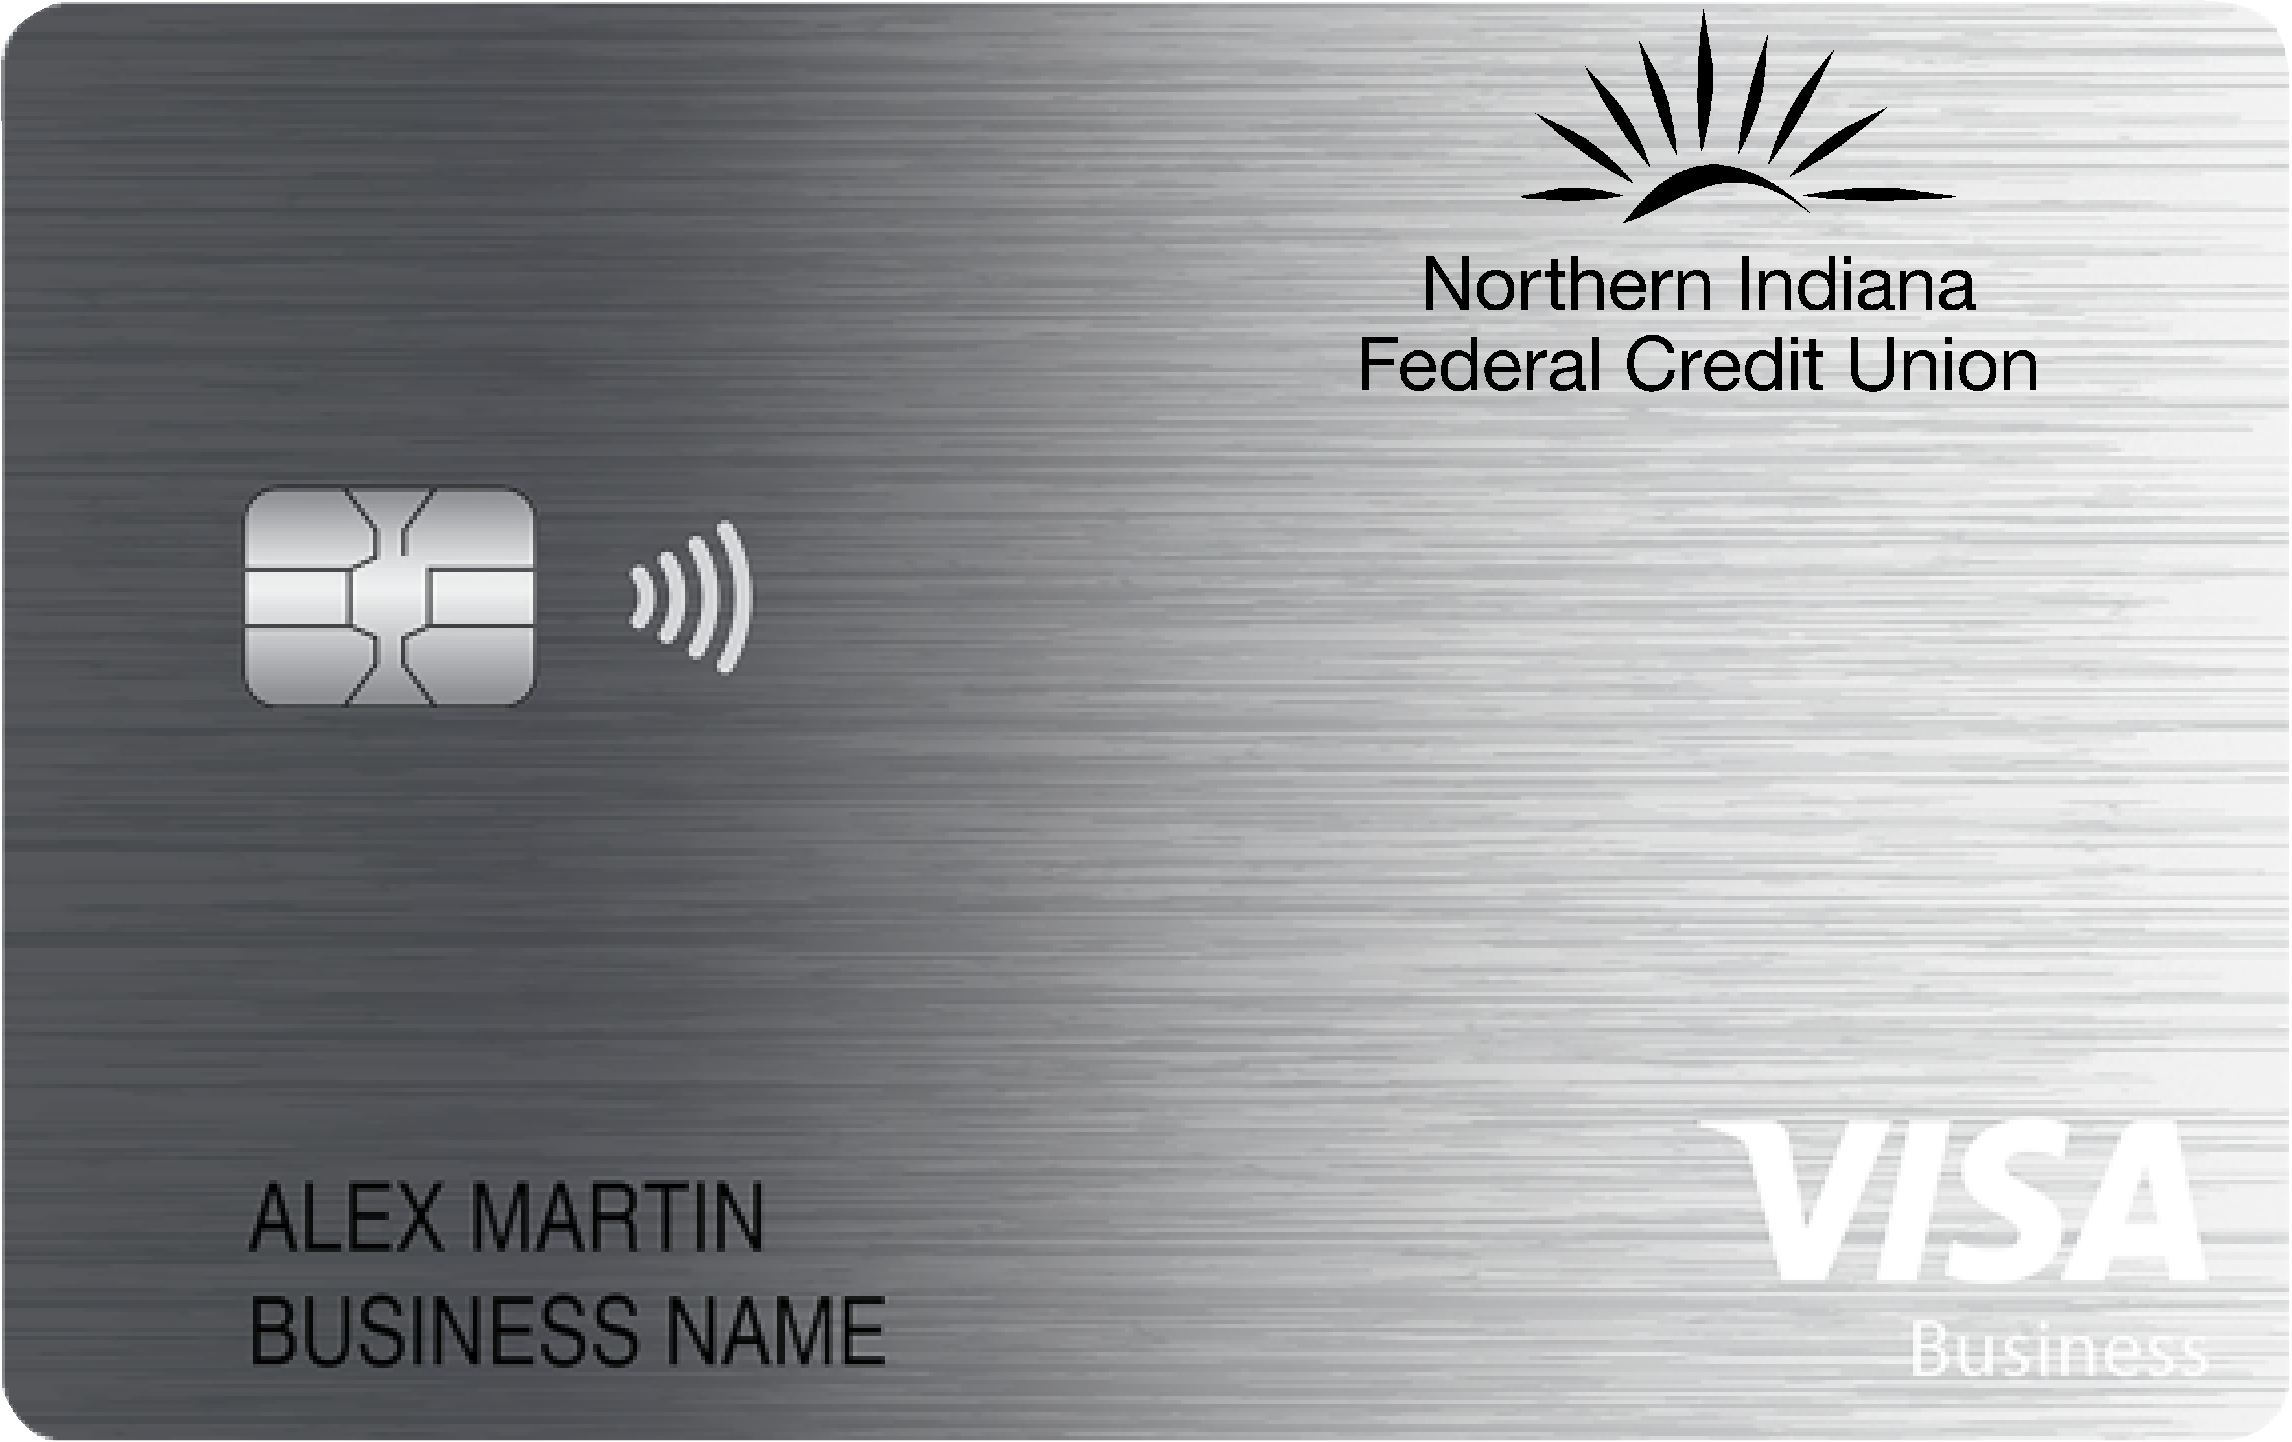 Northern Indiana Federal Credit Union